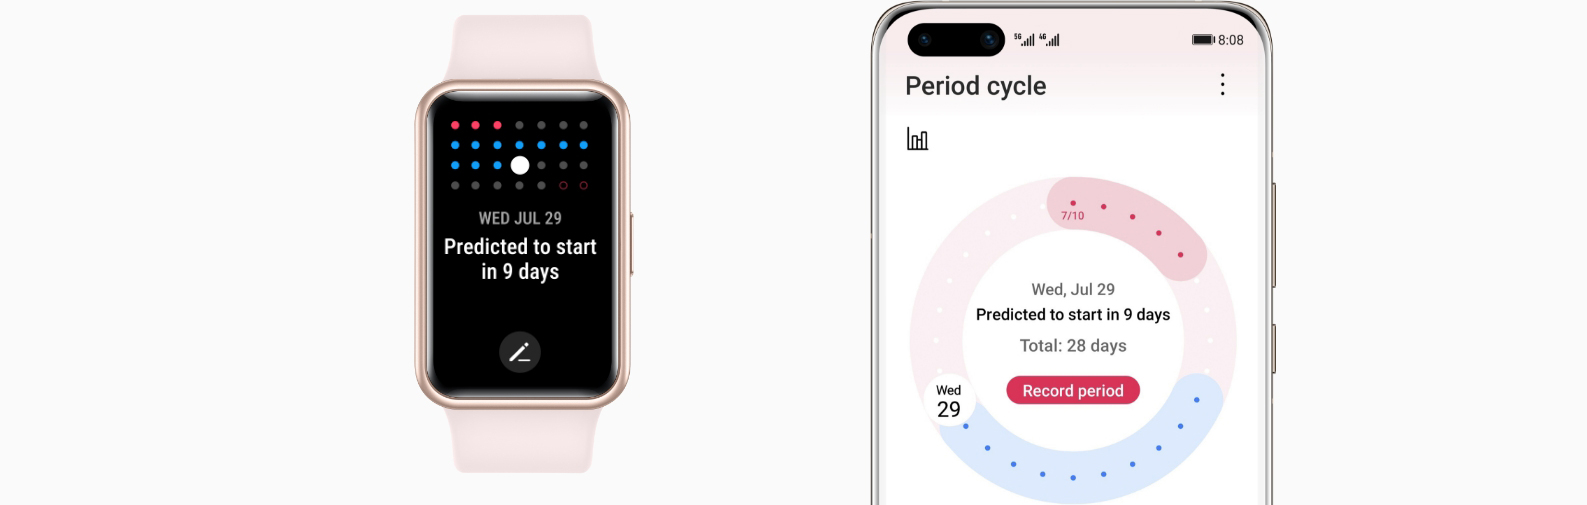 huawei watch fit-menstruation cycle tracking